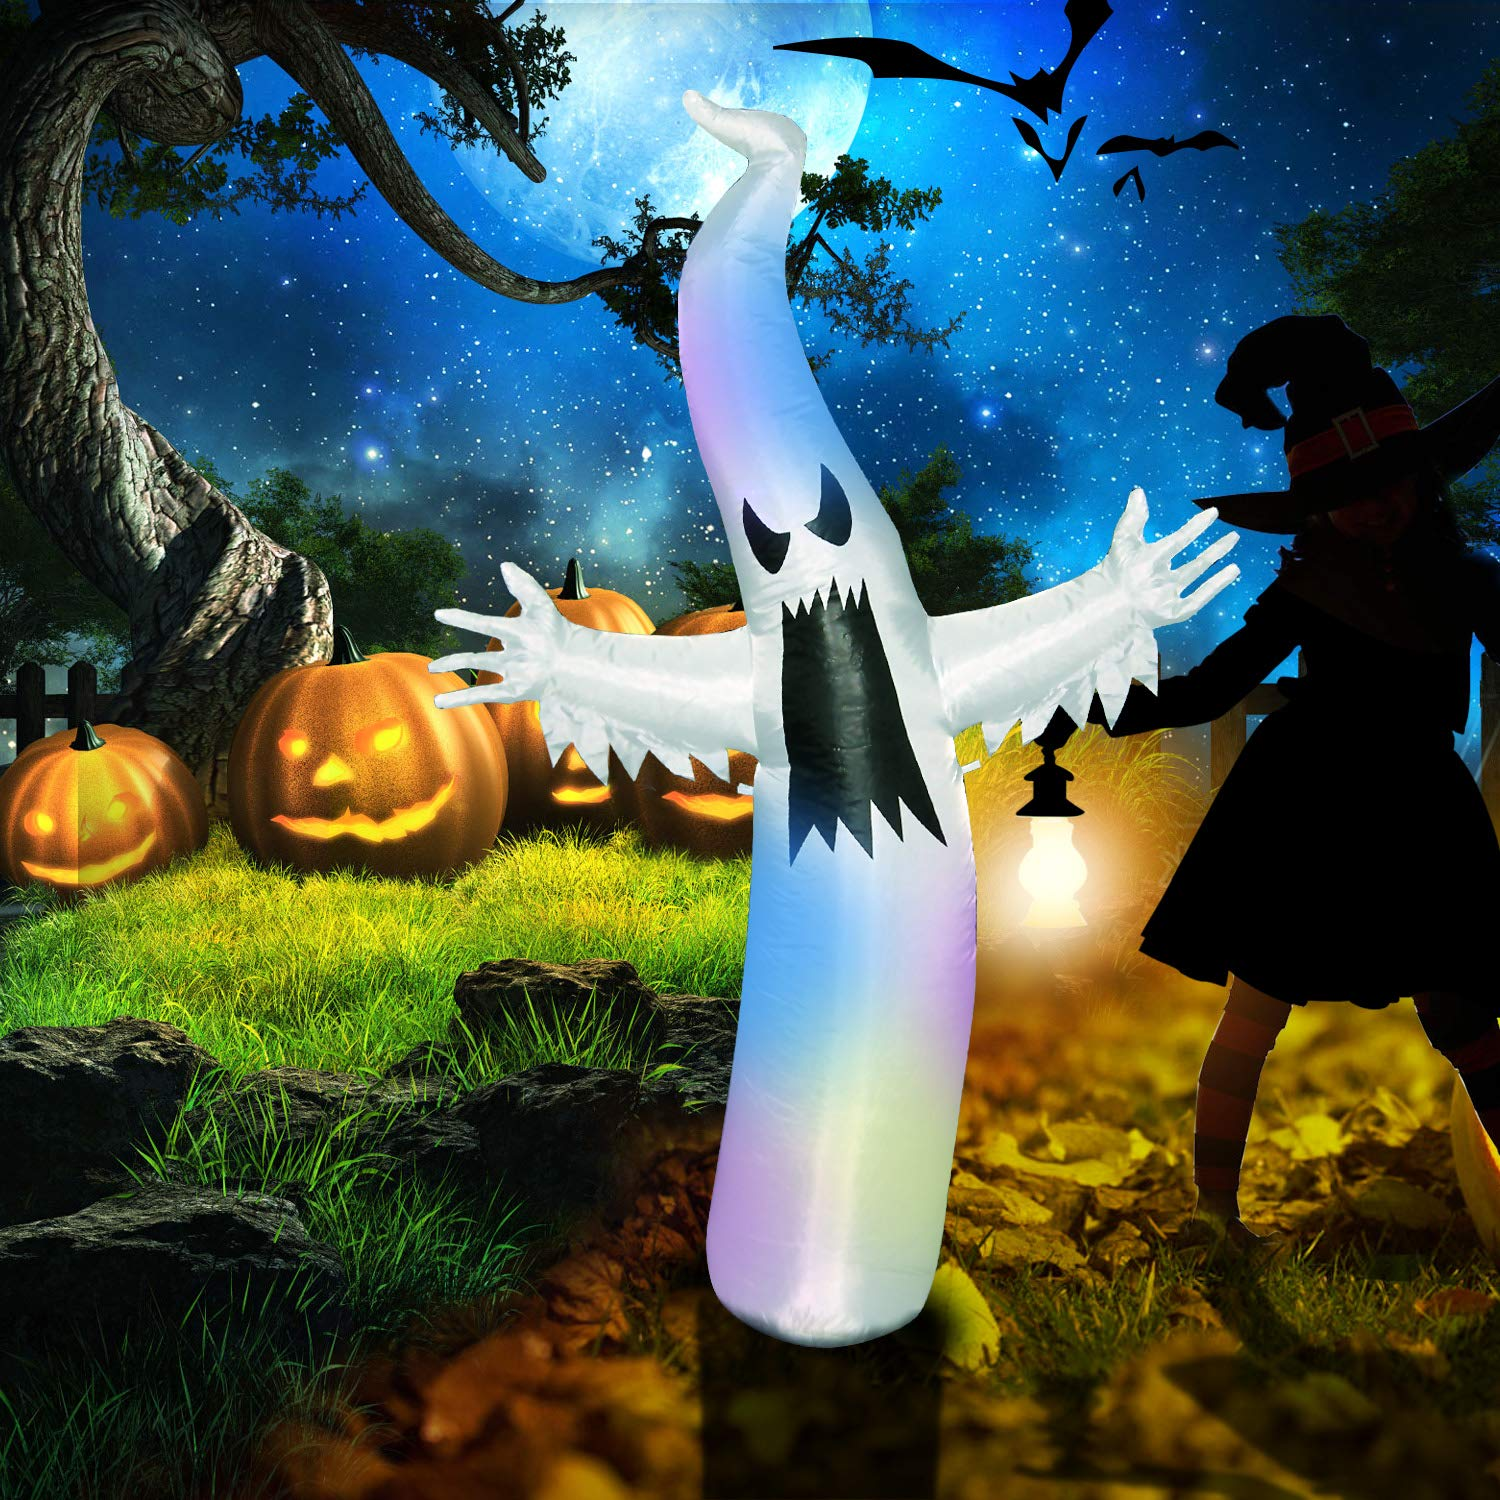 Pop-Tech 6ft Scary Airblown Halloween Inflatable Ghost with LED Lights Decor for Kids Indoor Outdoor Yard Garden Party Decorations Includes Stakes and Sandbags